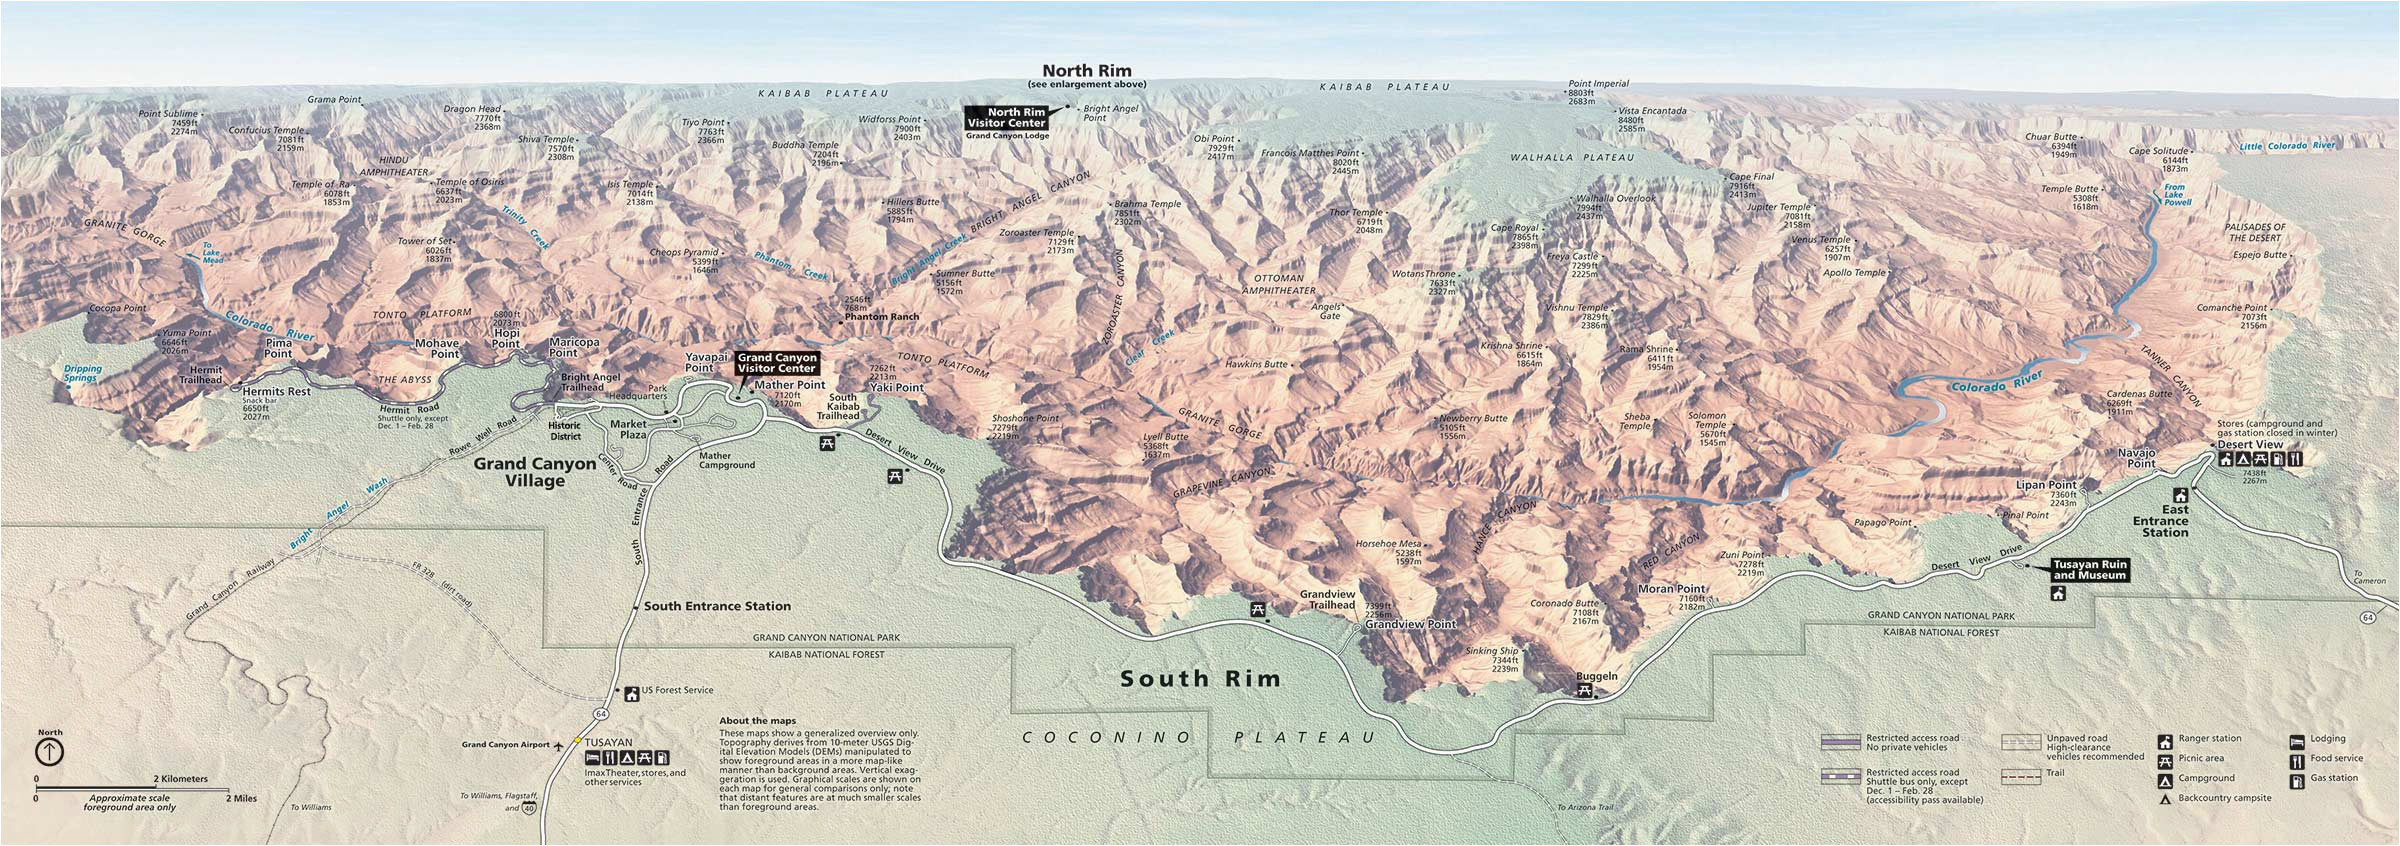 north rim grand canyon map awesome map las vegas and grand canyon